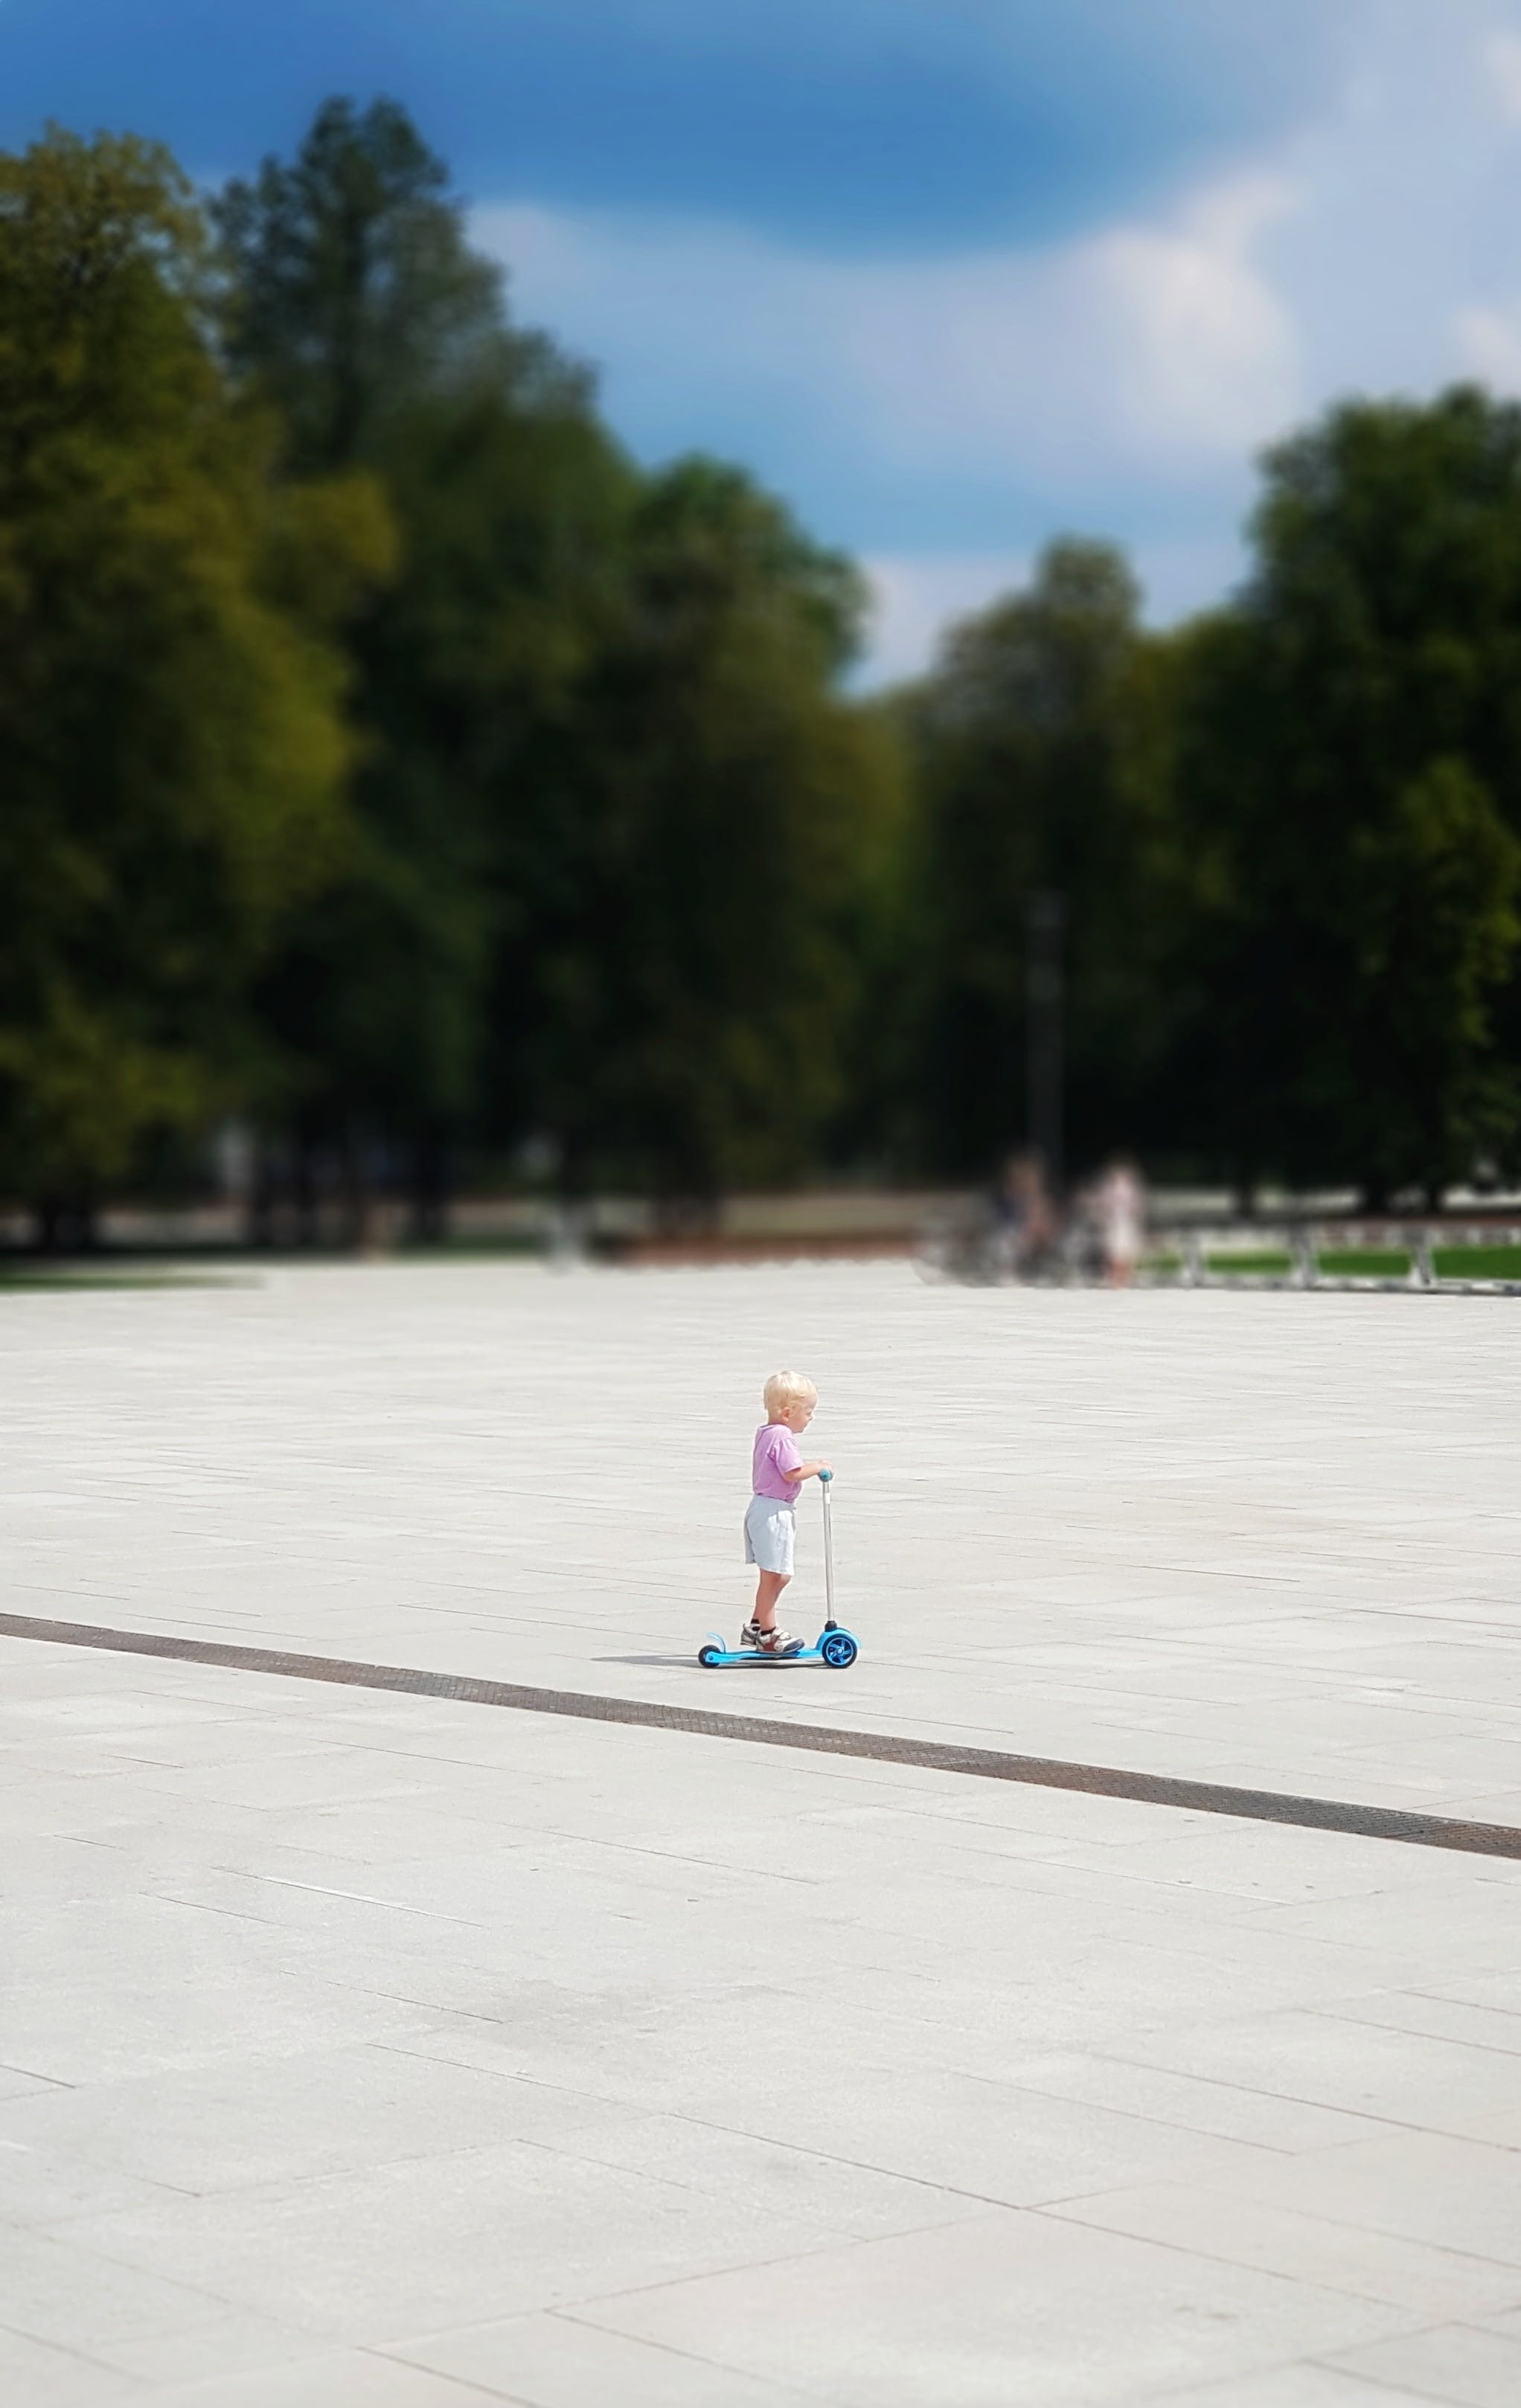 Free stock photo of #mobilechallenge, beautiful, central park, child